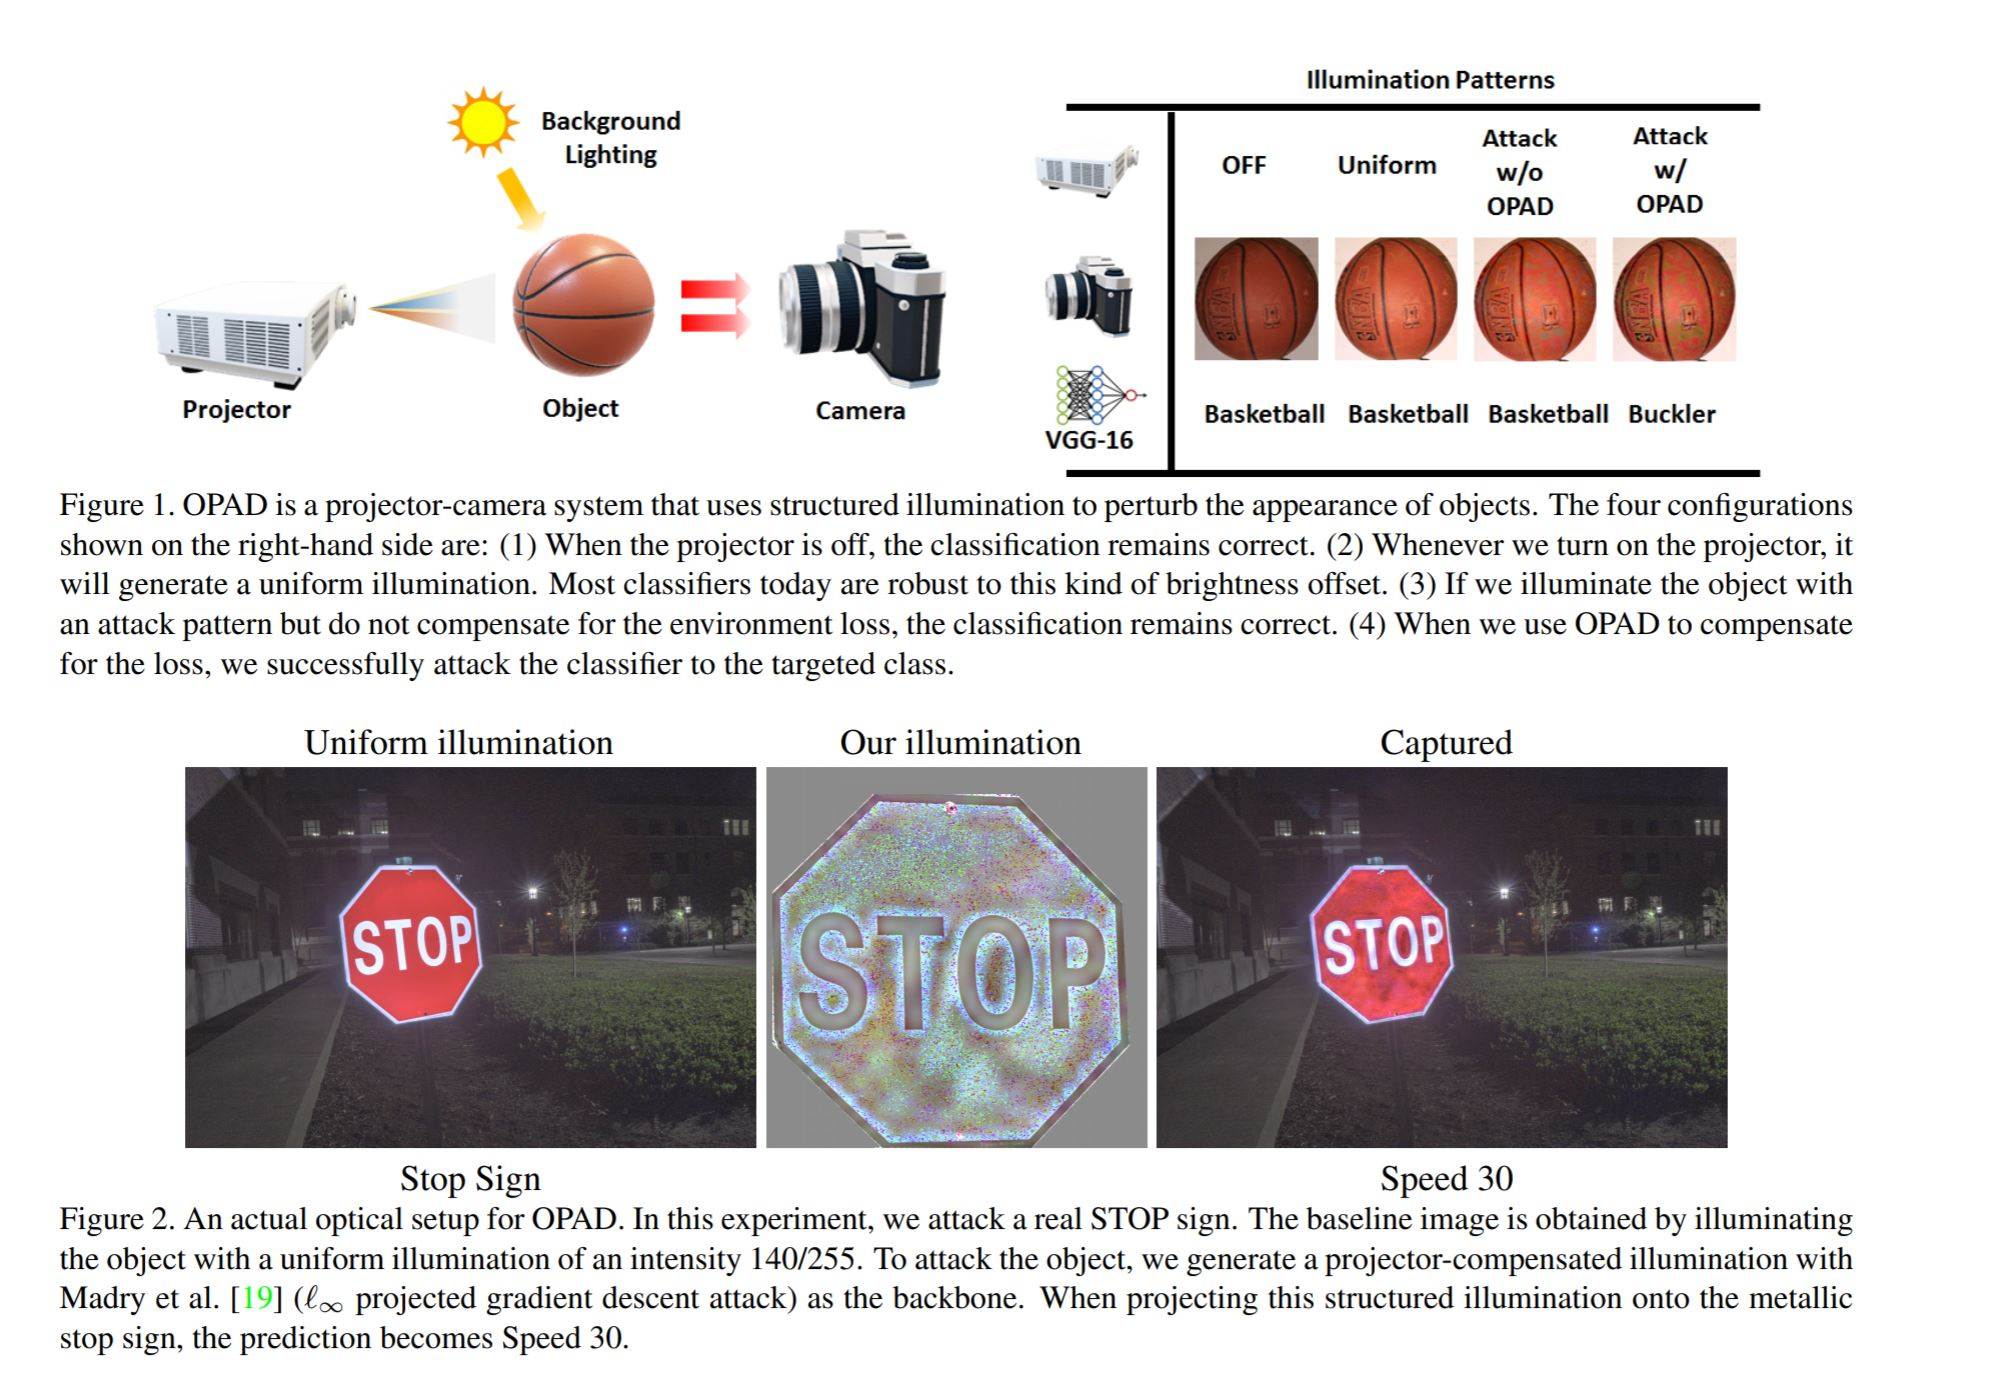 A screenshot from a pre-print paper demonstrating an adversarial attack on a basketball and a stop sign using a projector.